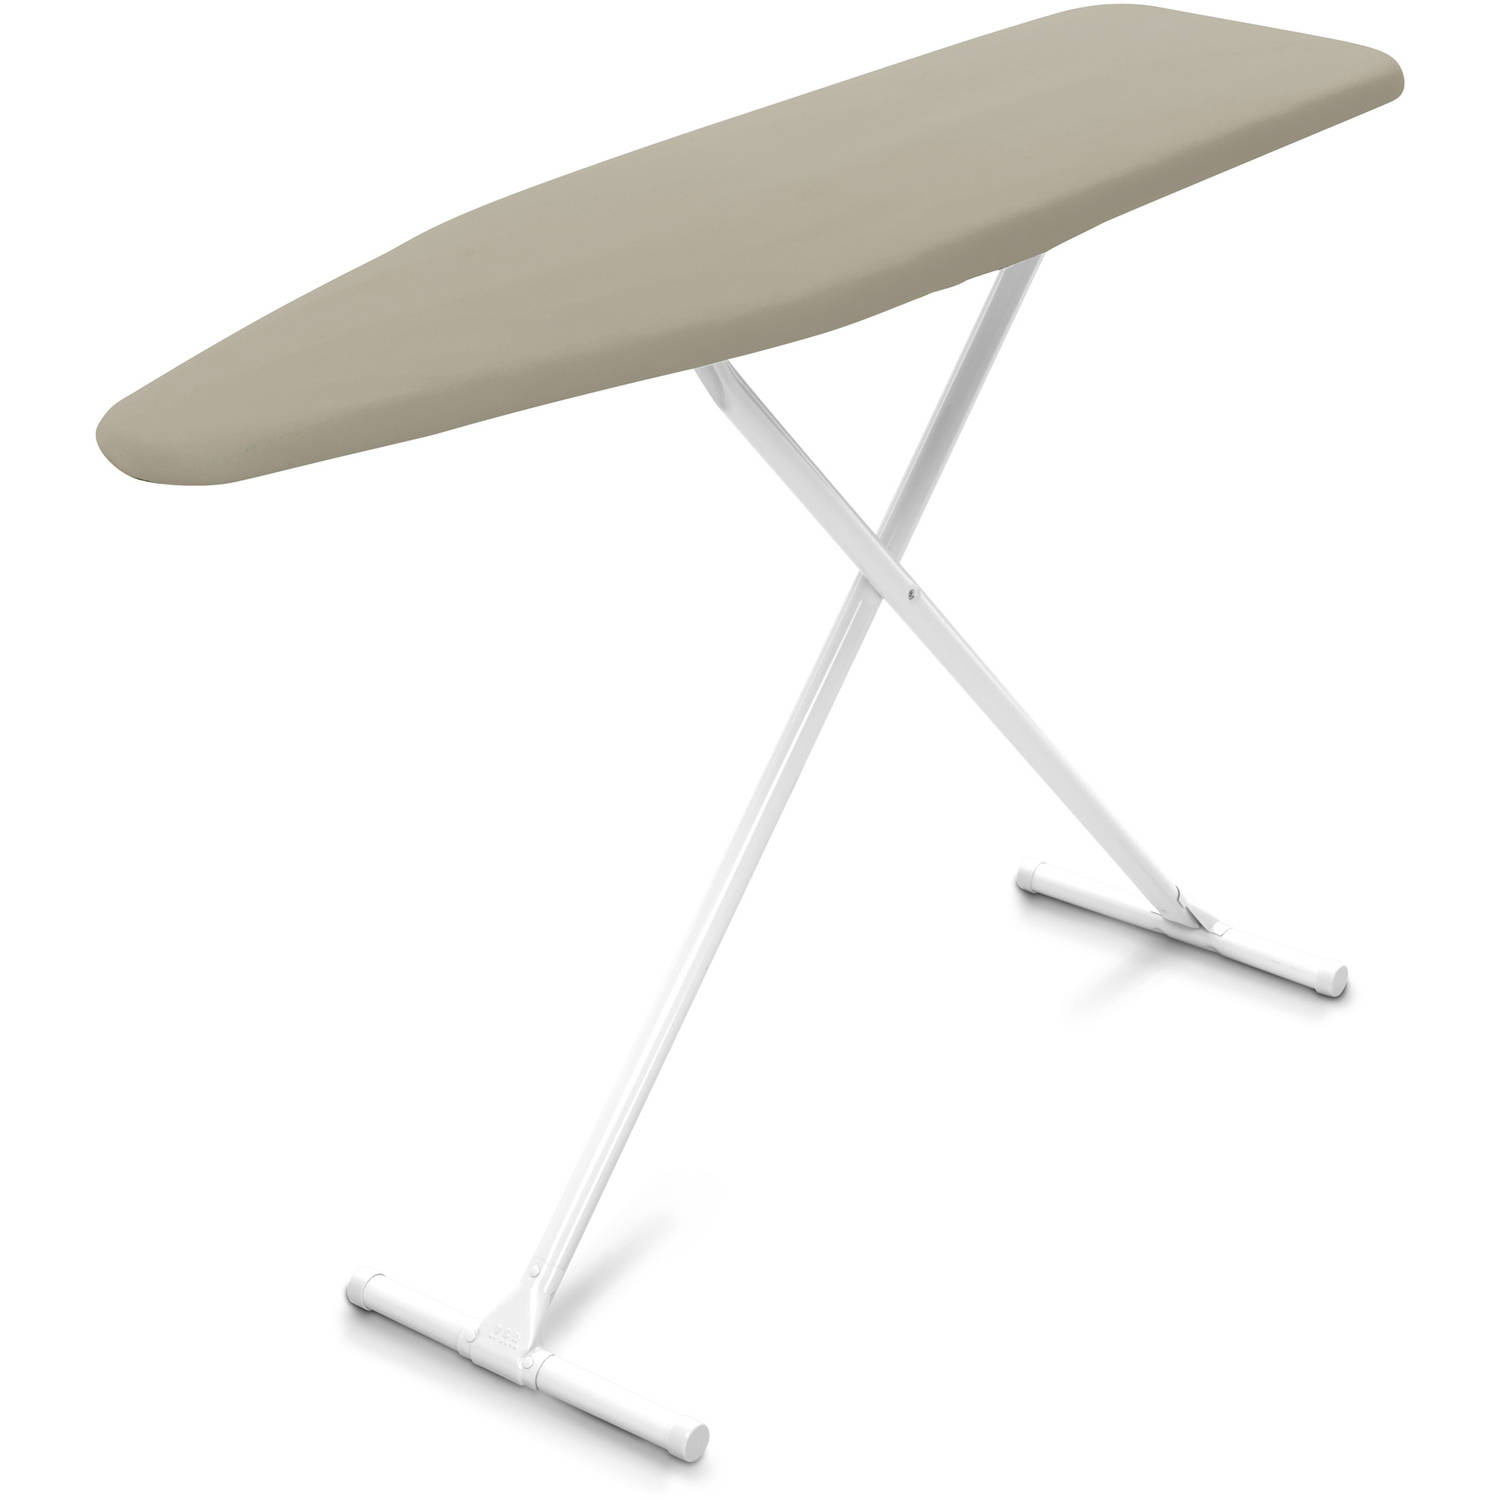 Homz T Leg Ironing Board with Cover, Taupe